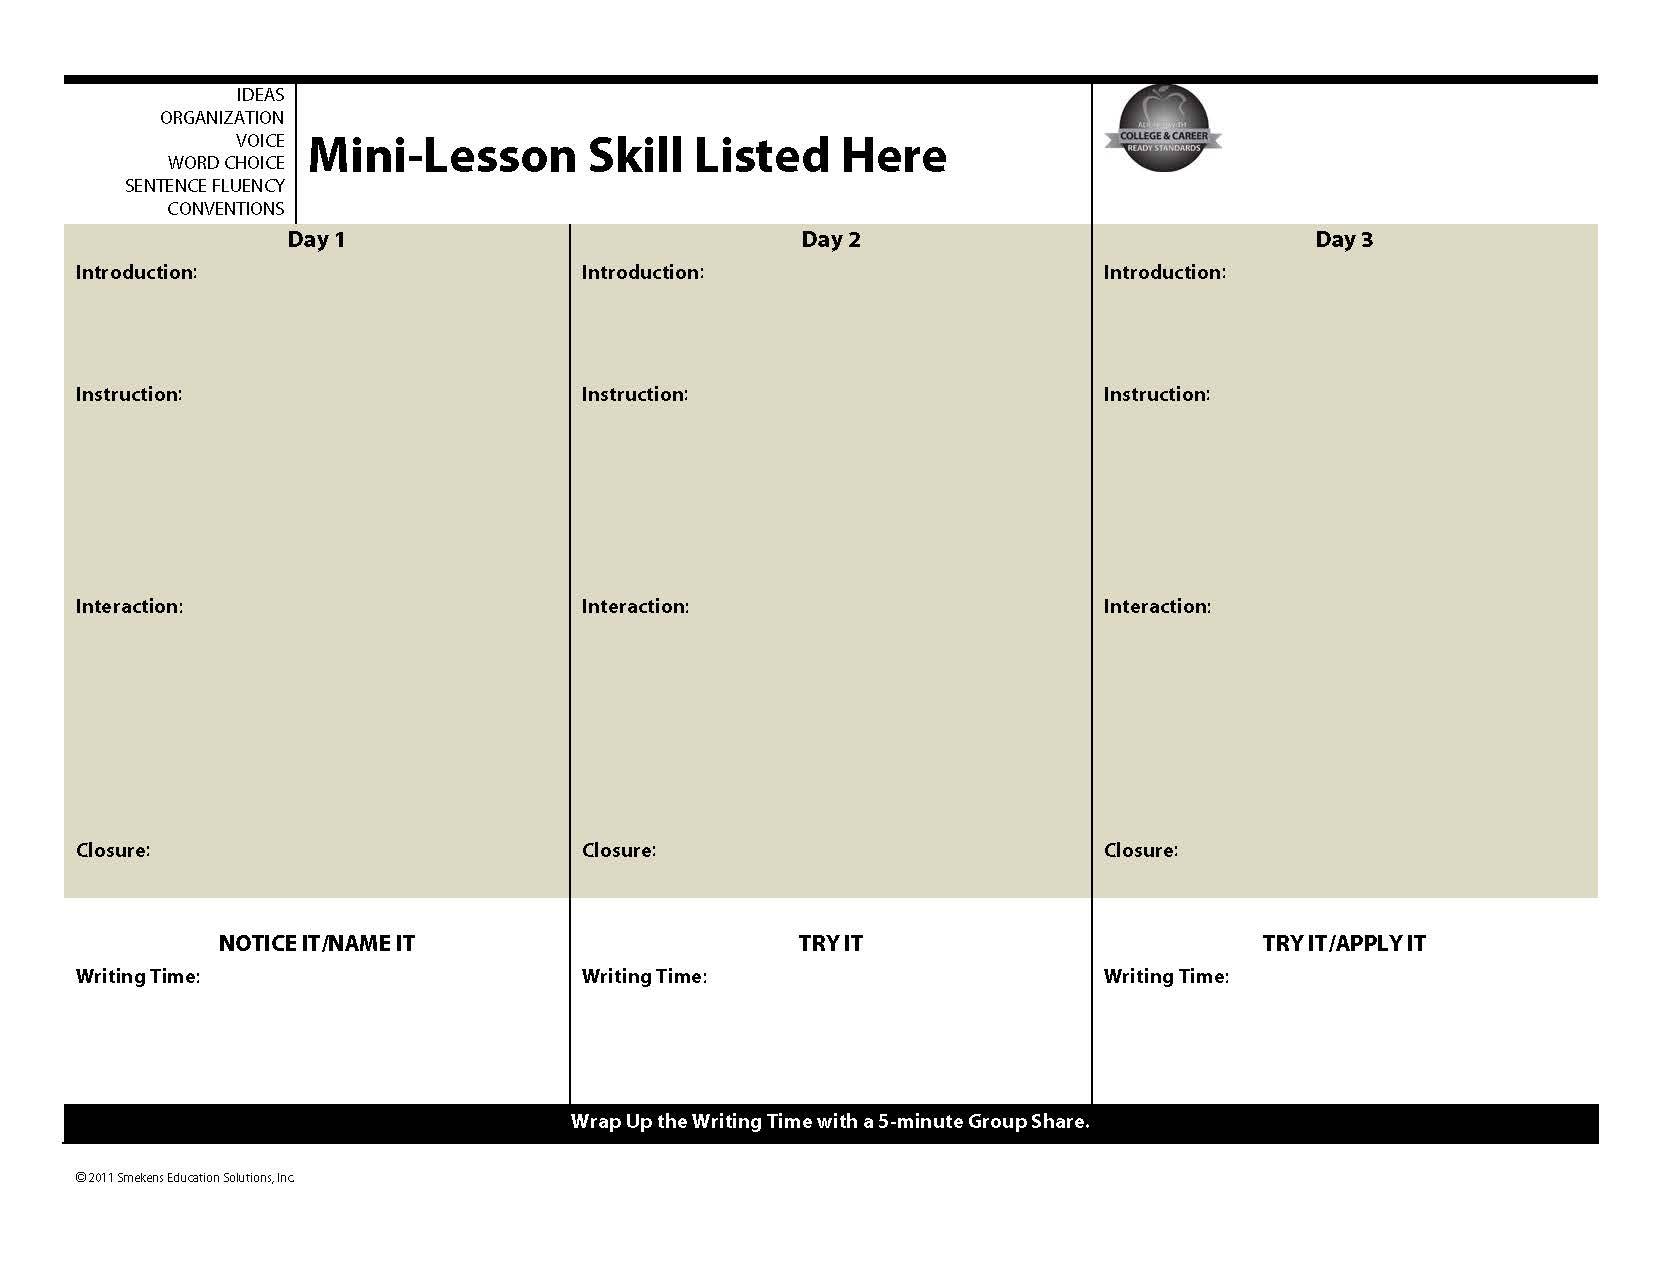 Mini-Lesson Planning Template: 3-Day Series